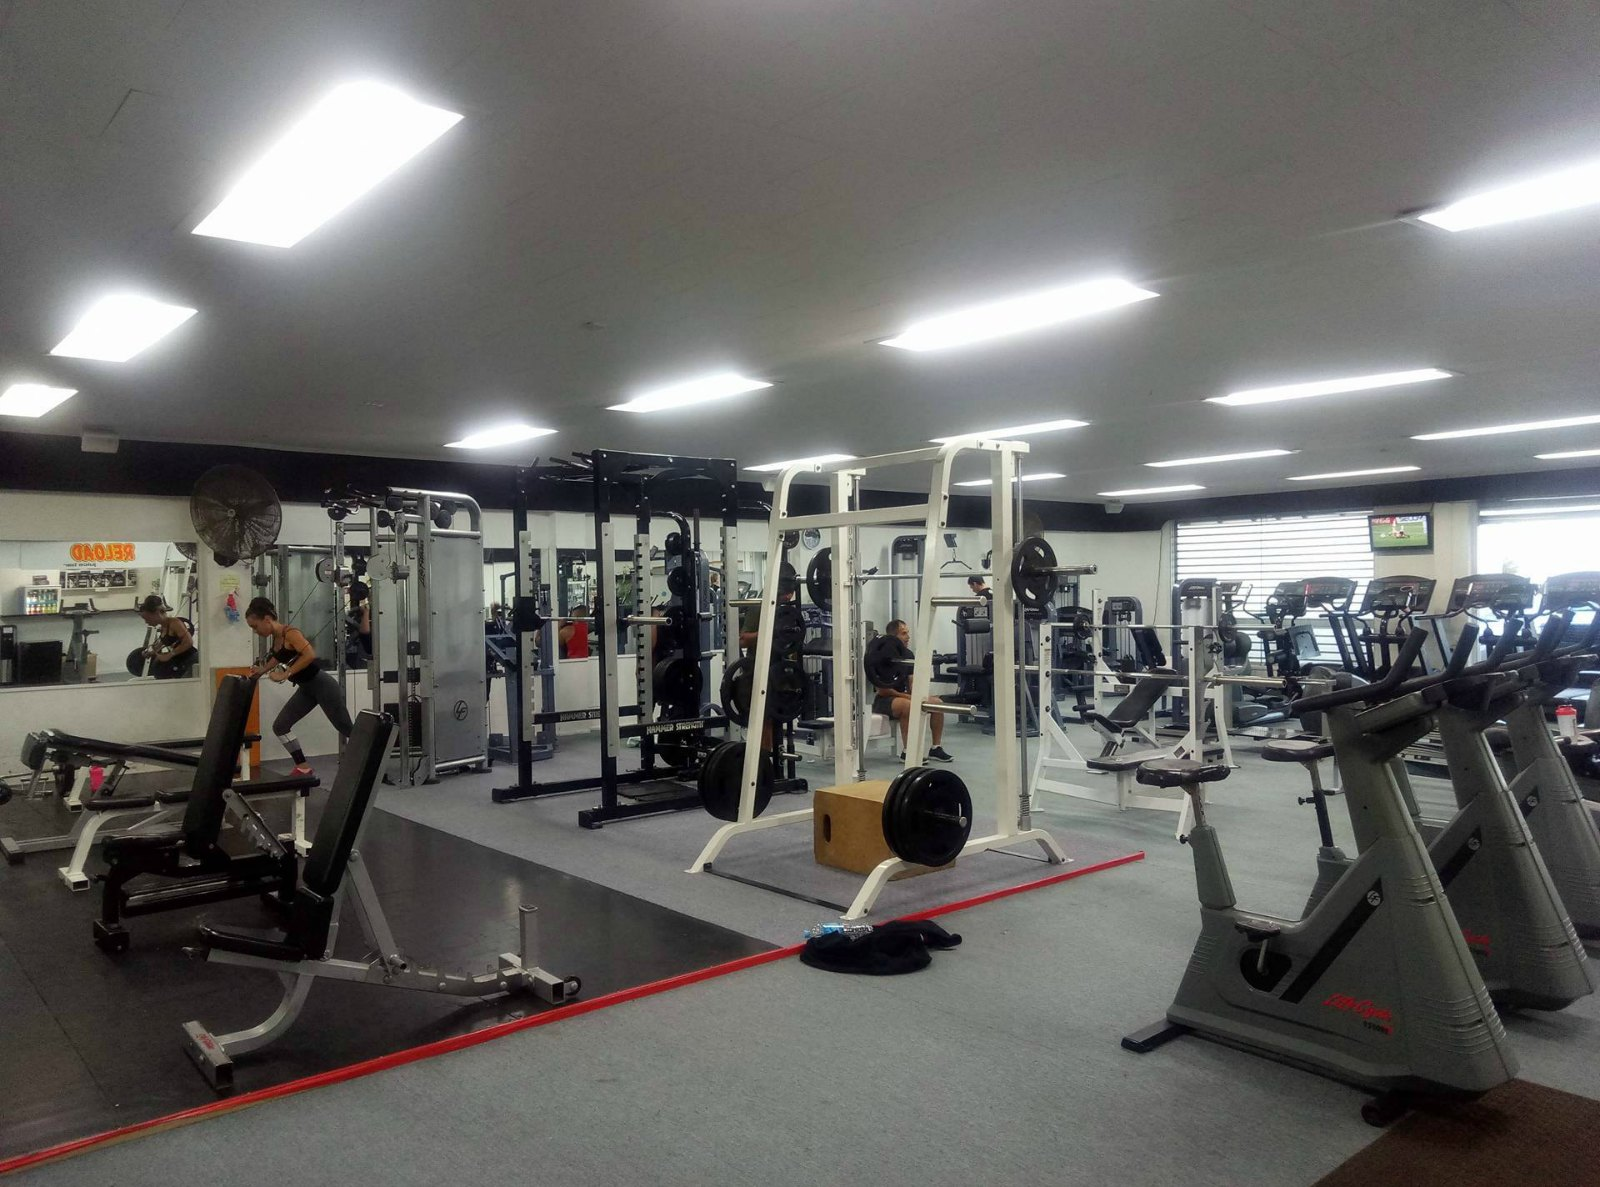 Club Physical Kaitaia gym